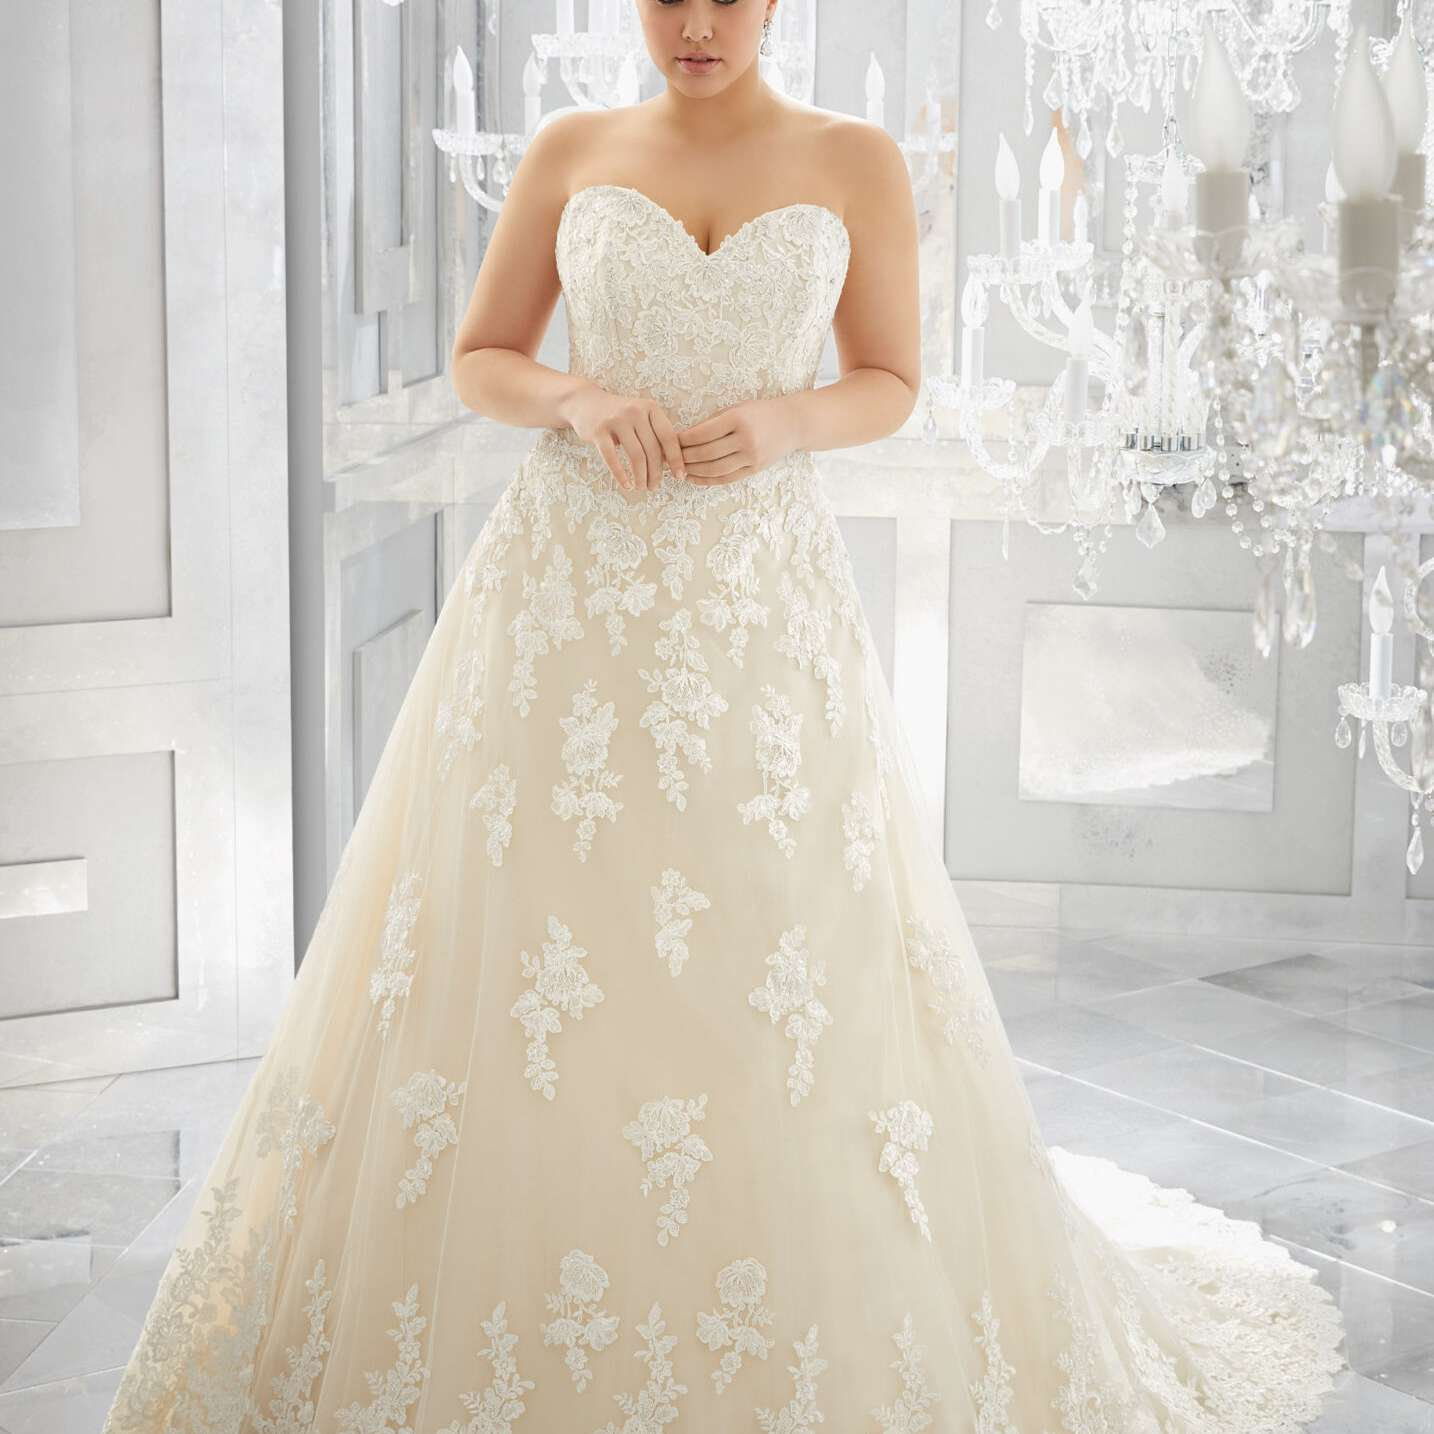 Plus size model in long strapless wedding gown with floral emroidery